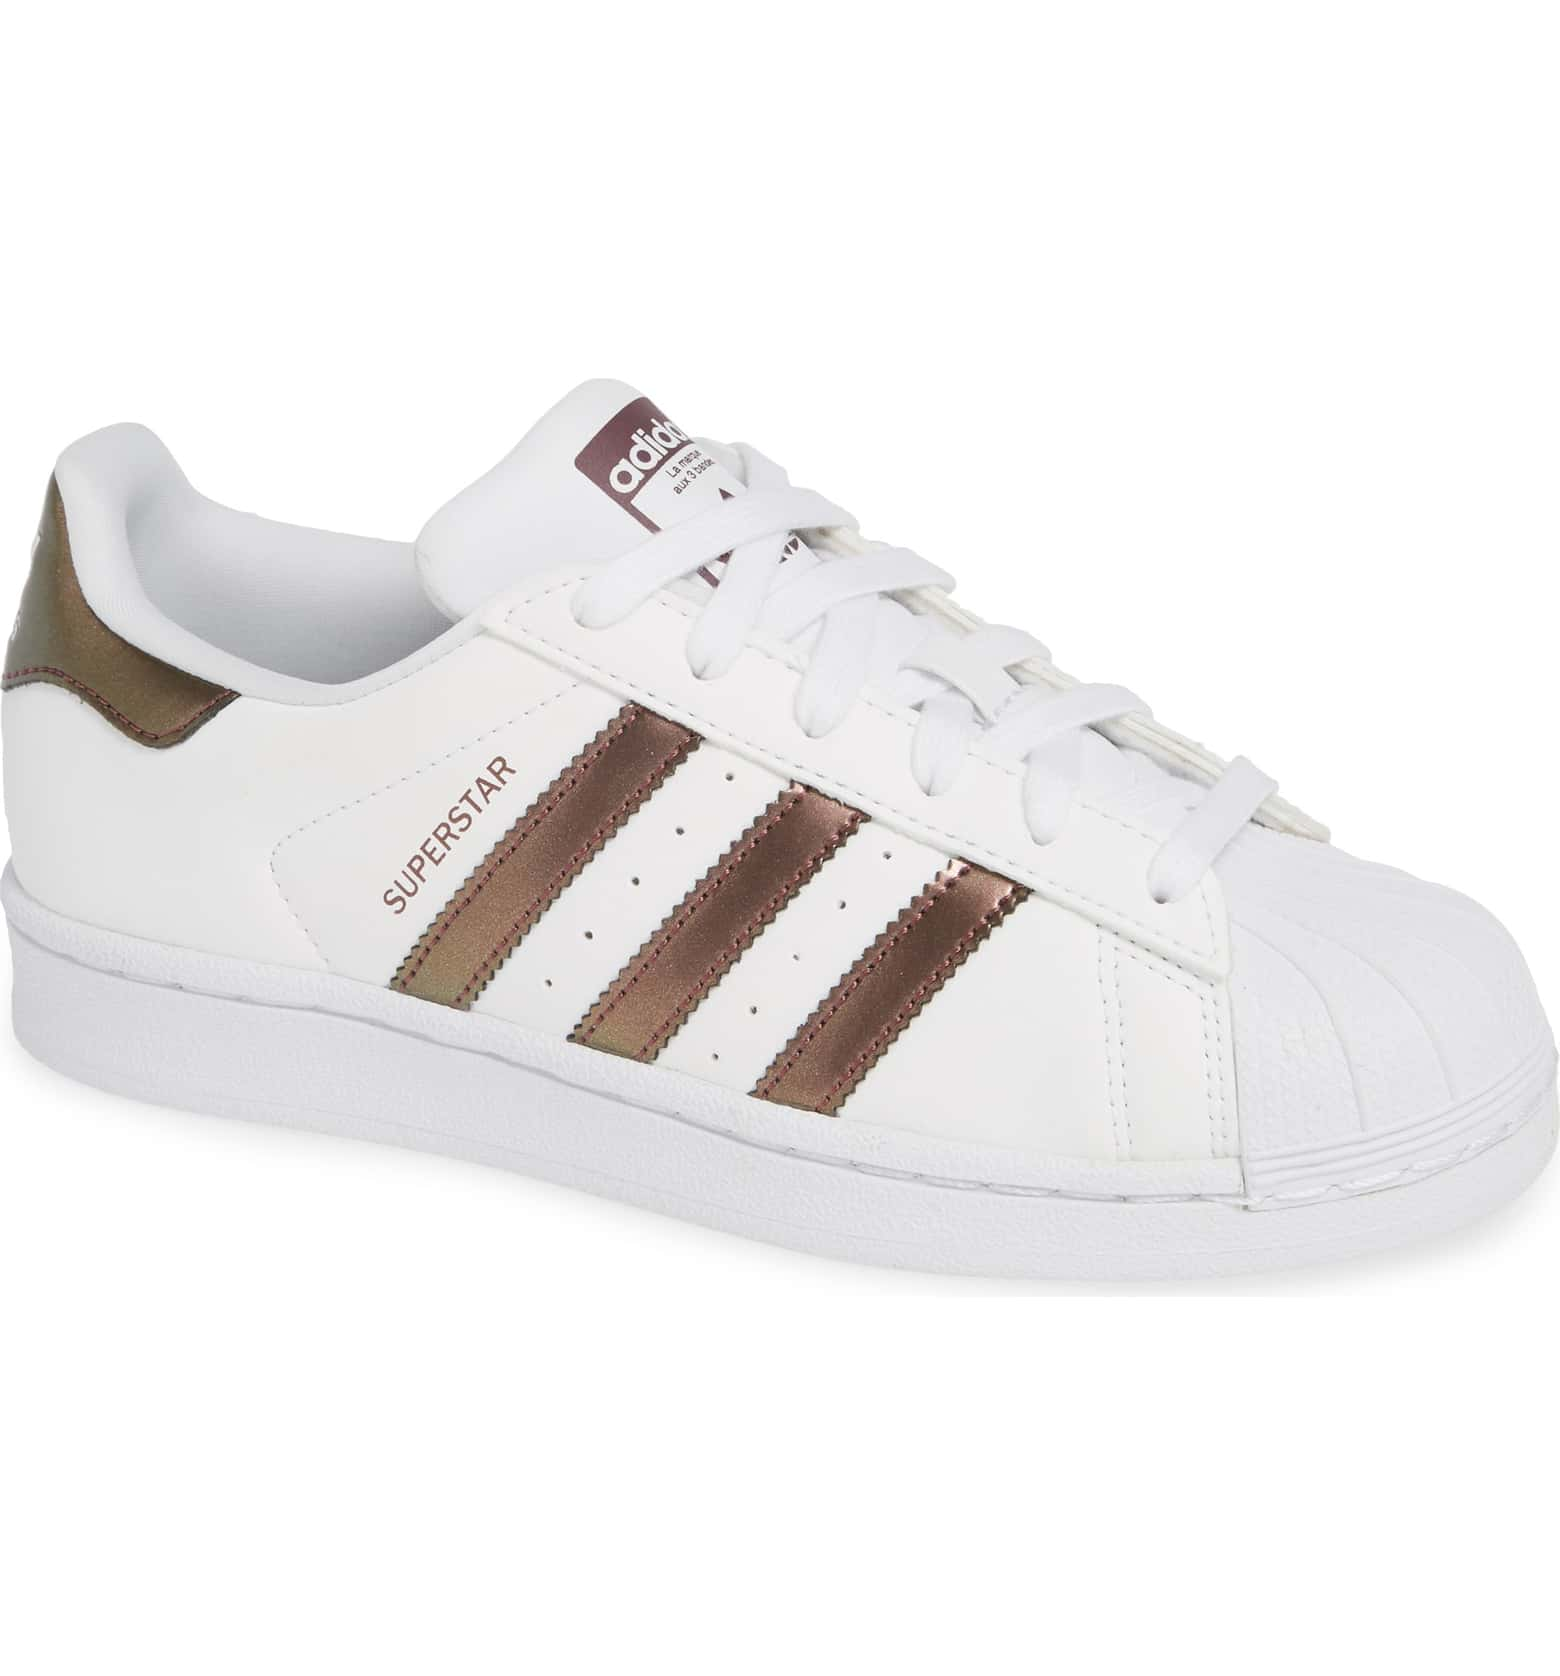 ADIDAS Superstar II.jpeg